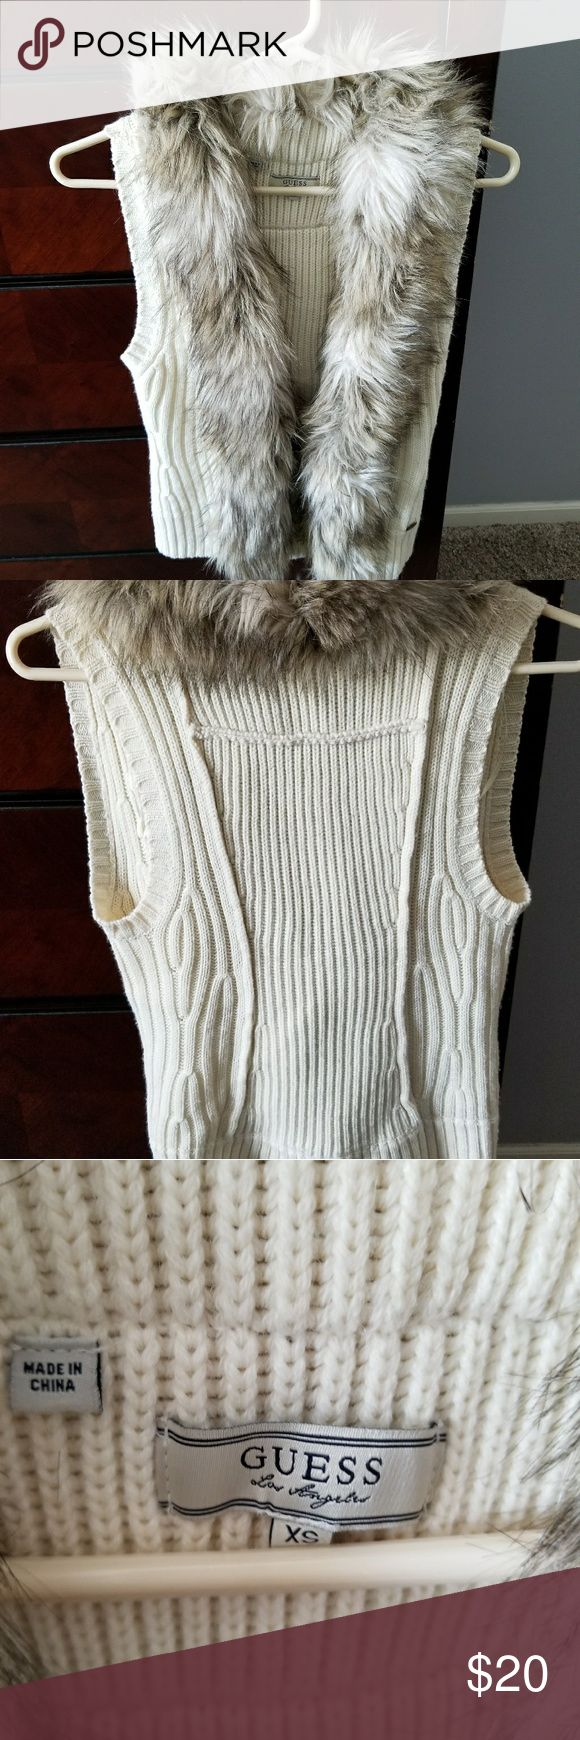 Guess fur trimmed vest Adorable fur trimmed cream vest by Guess. Slight stain in fur trim, not noticable (pictured) Guess Jackets & Coats Vests